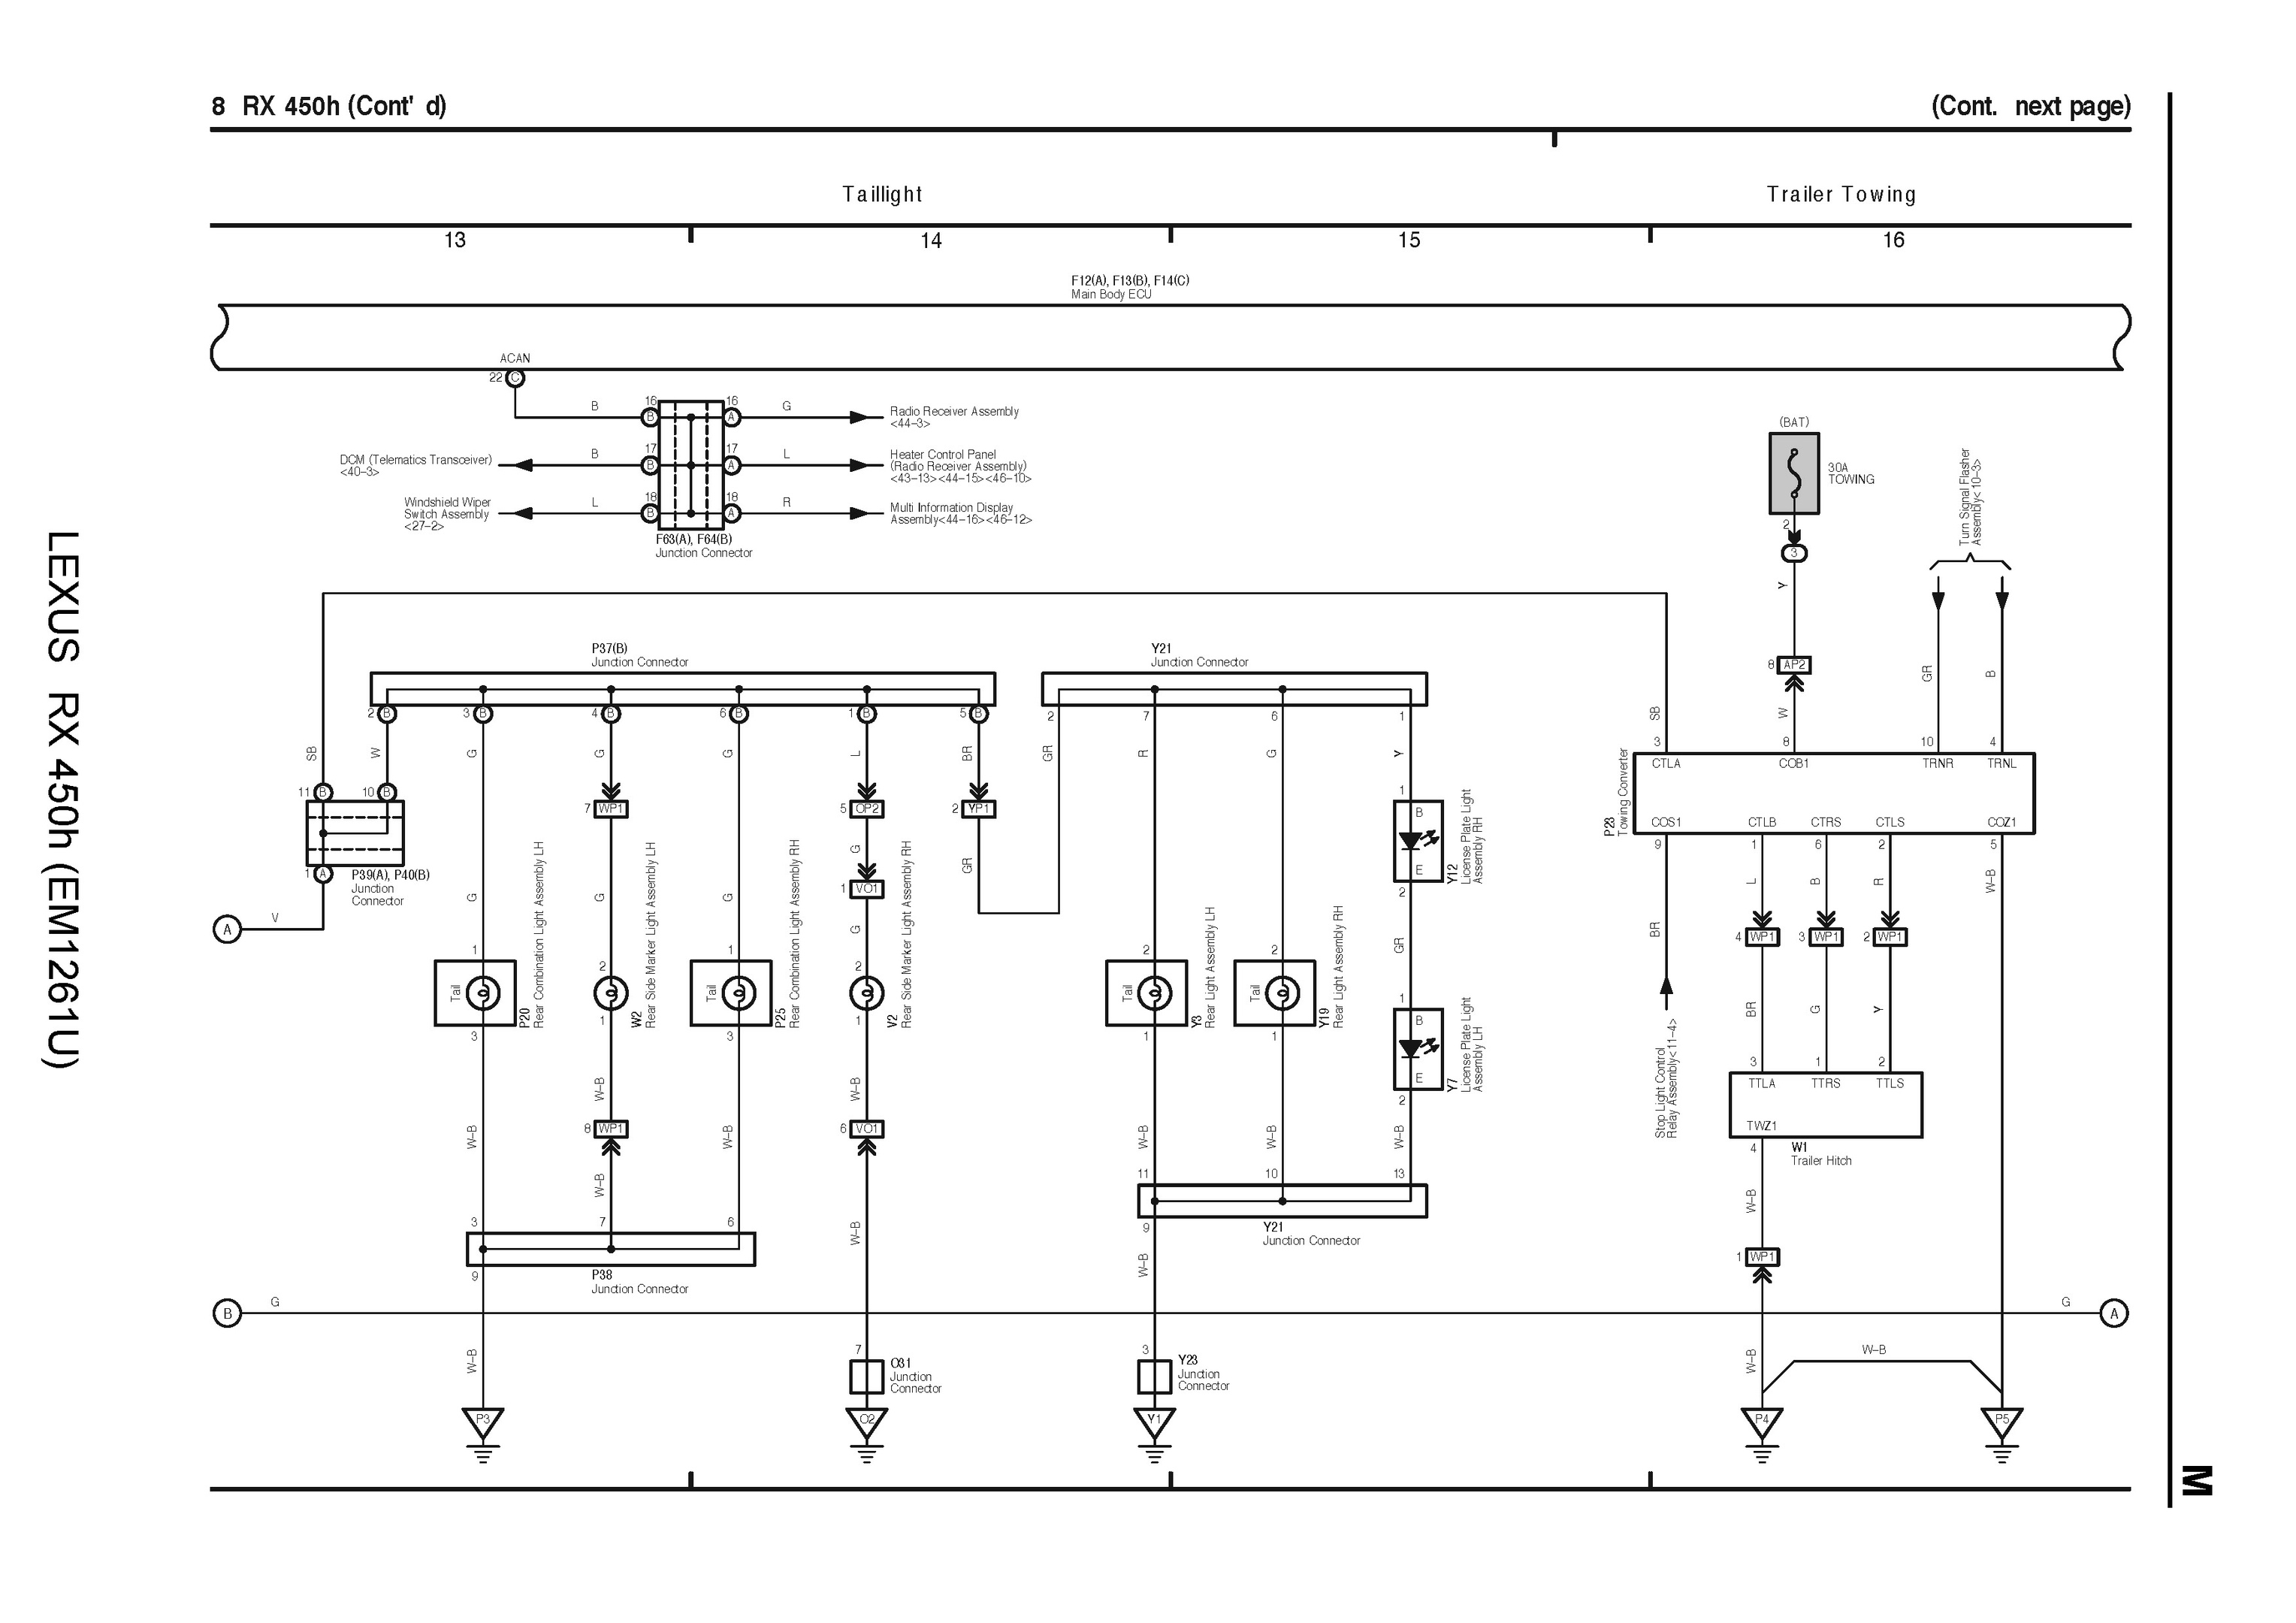 2009 lexus rx450h oem electrical wiring diagram language english file type pdf